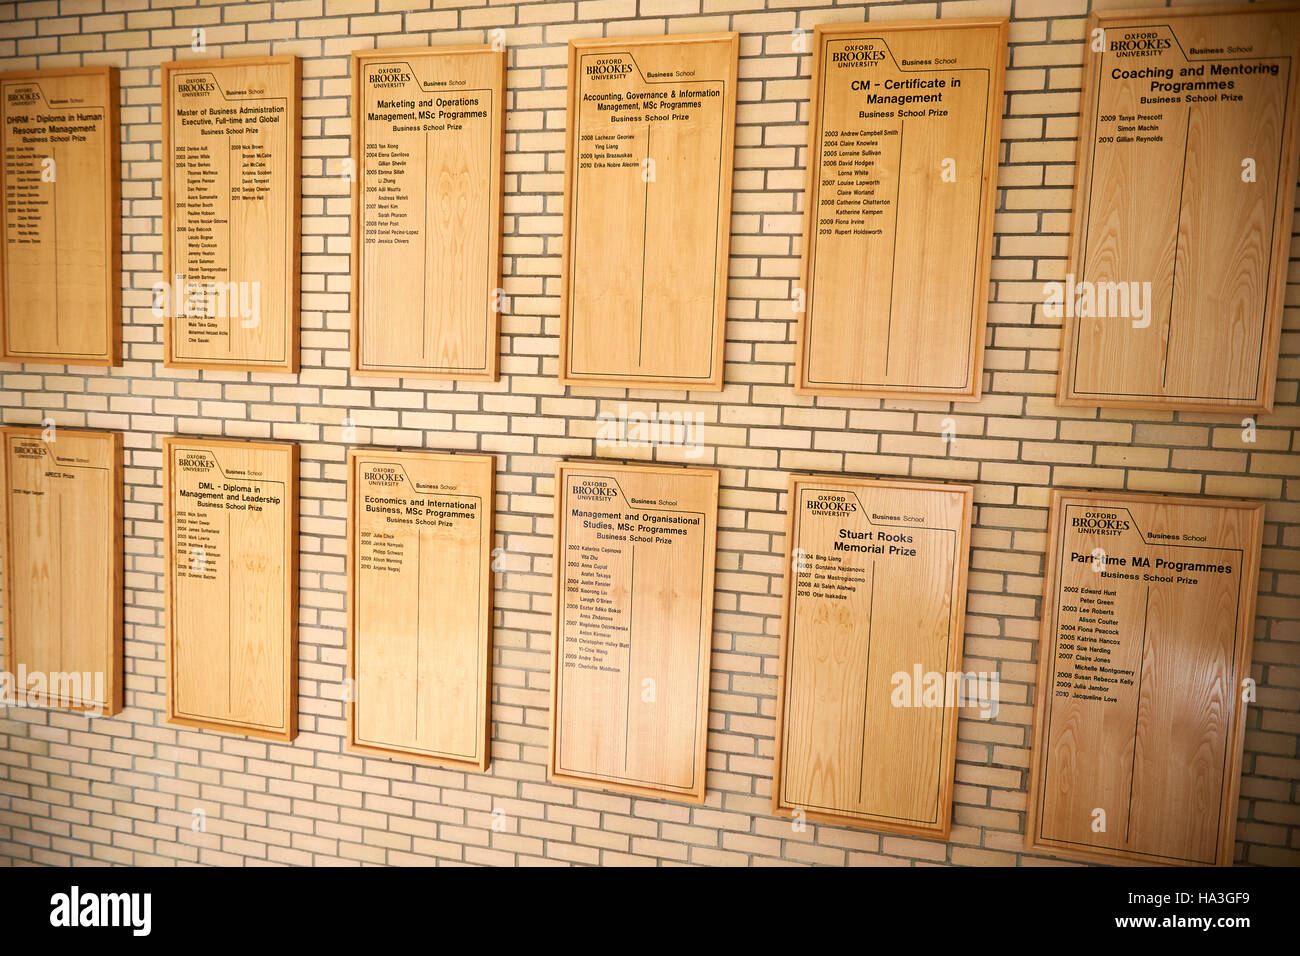 Honours boards in the post-graduate centre at the Oxford Brookes University Business School Stock Photo